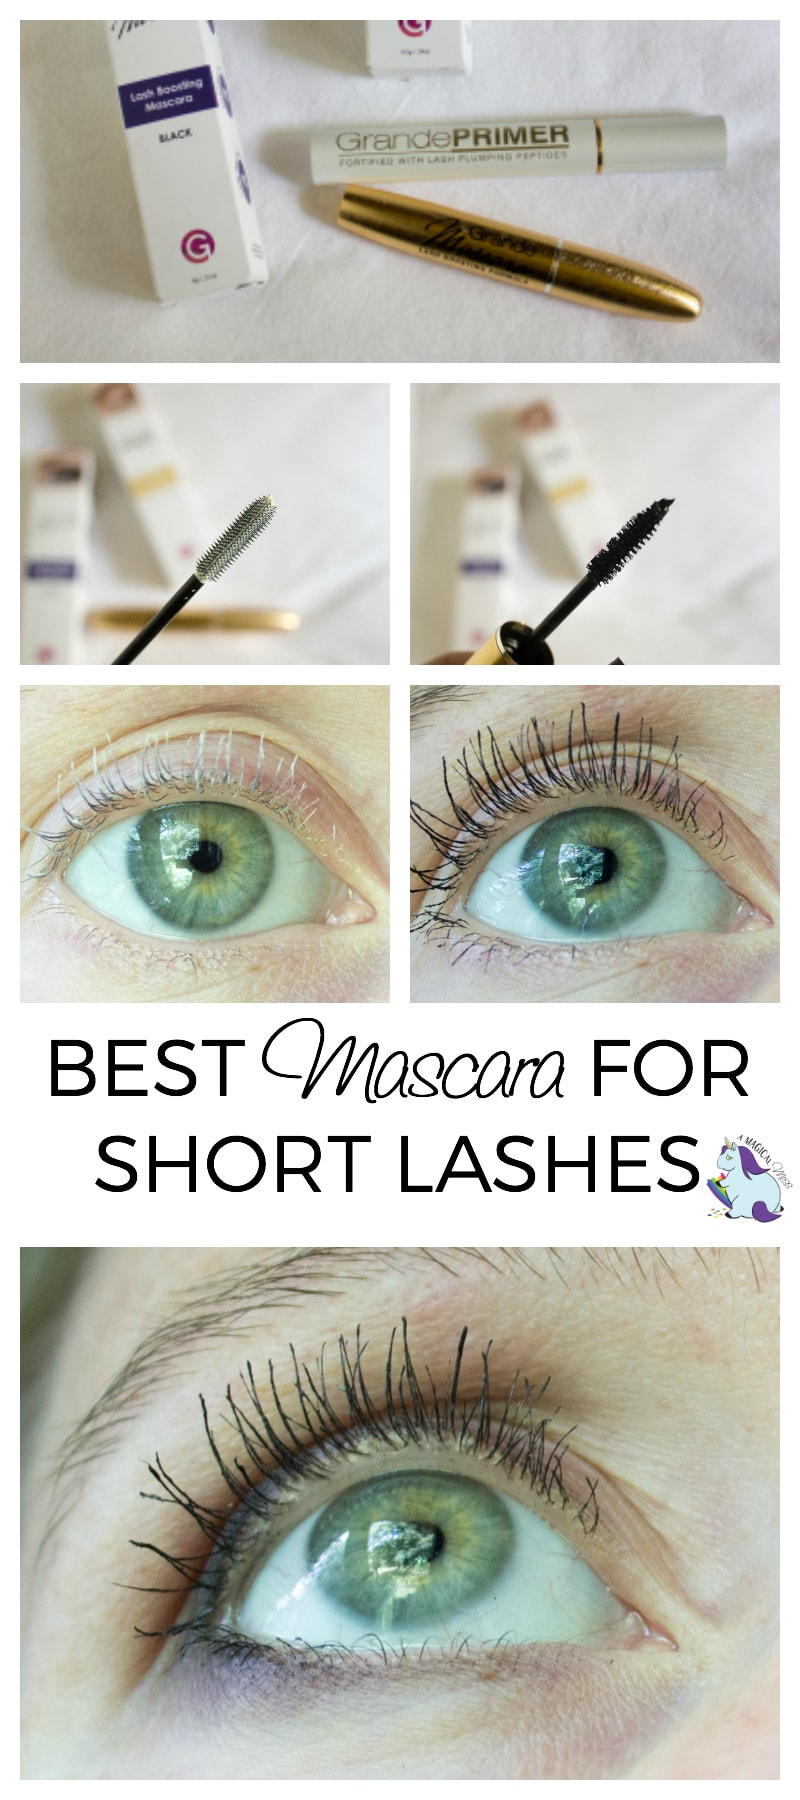 Best Mascara for Short Lashes